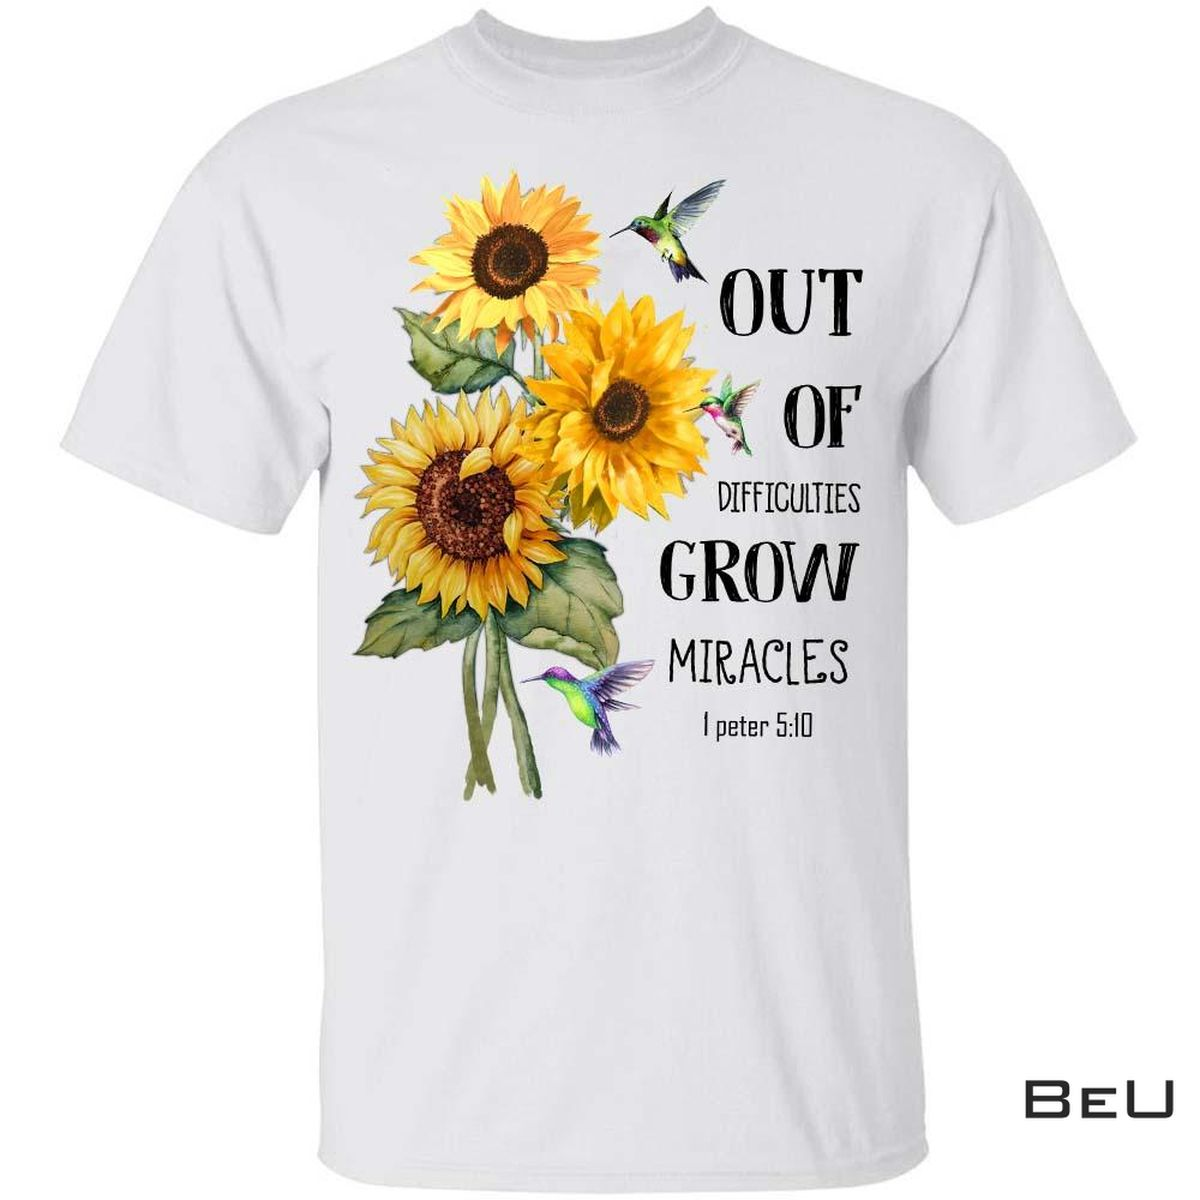 Sunflower Out Of Difficulties, Grow Miracles Jesus Shirt